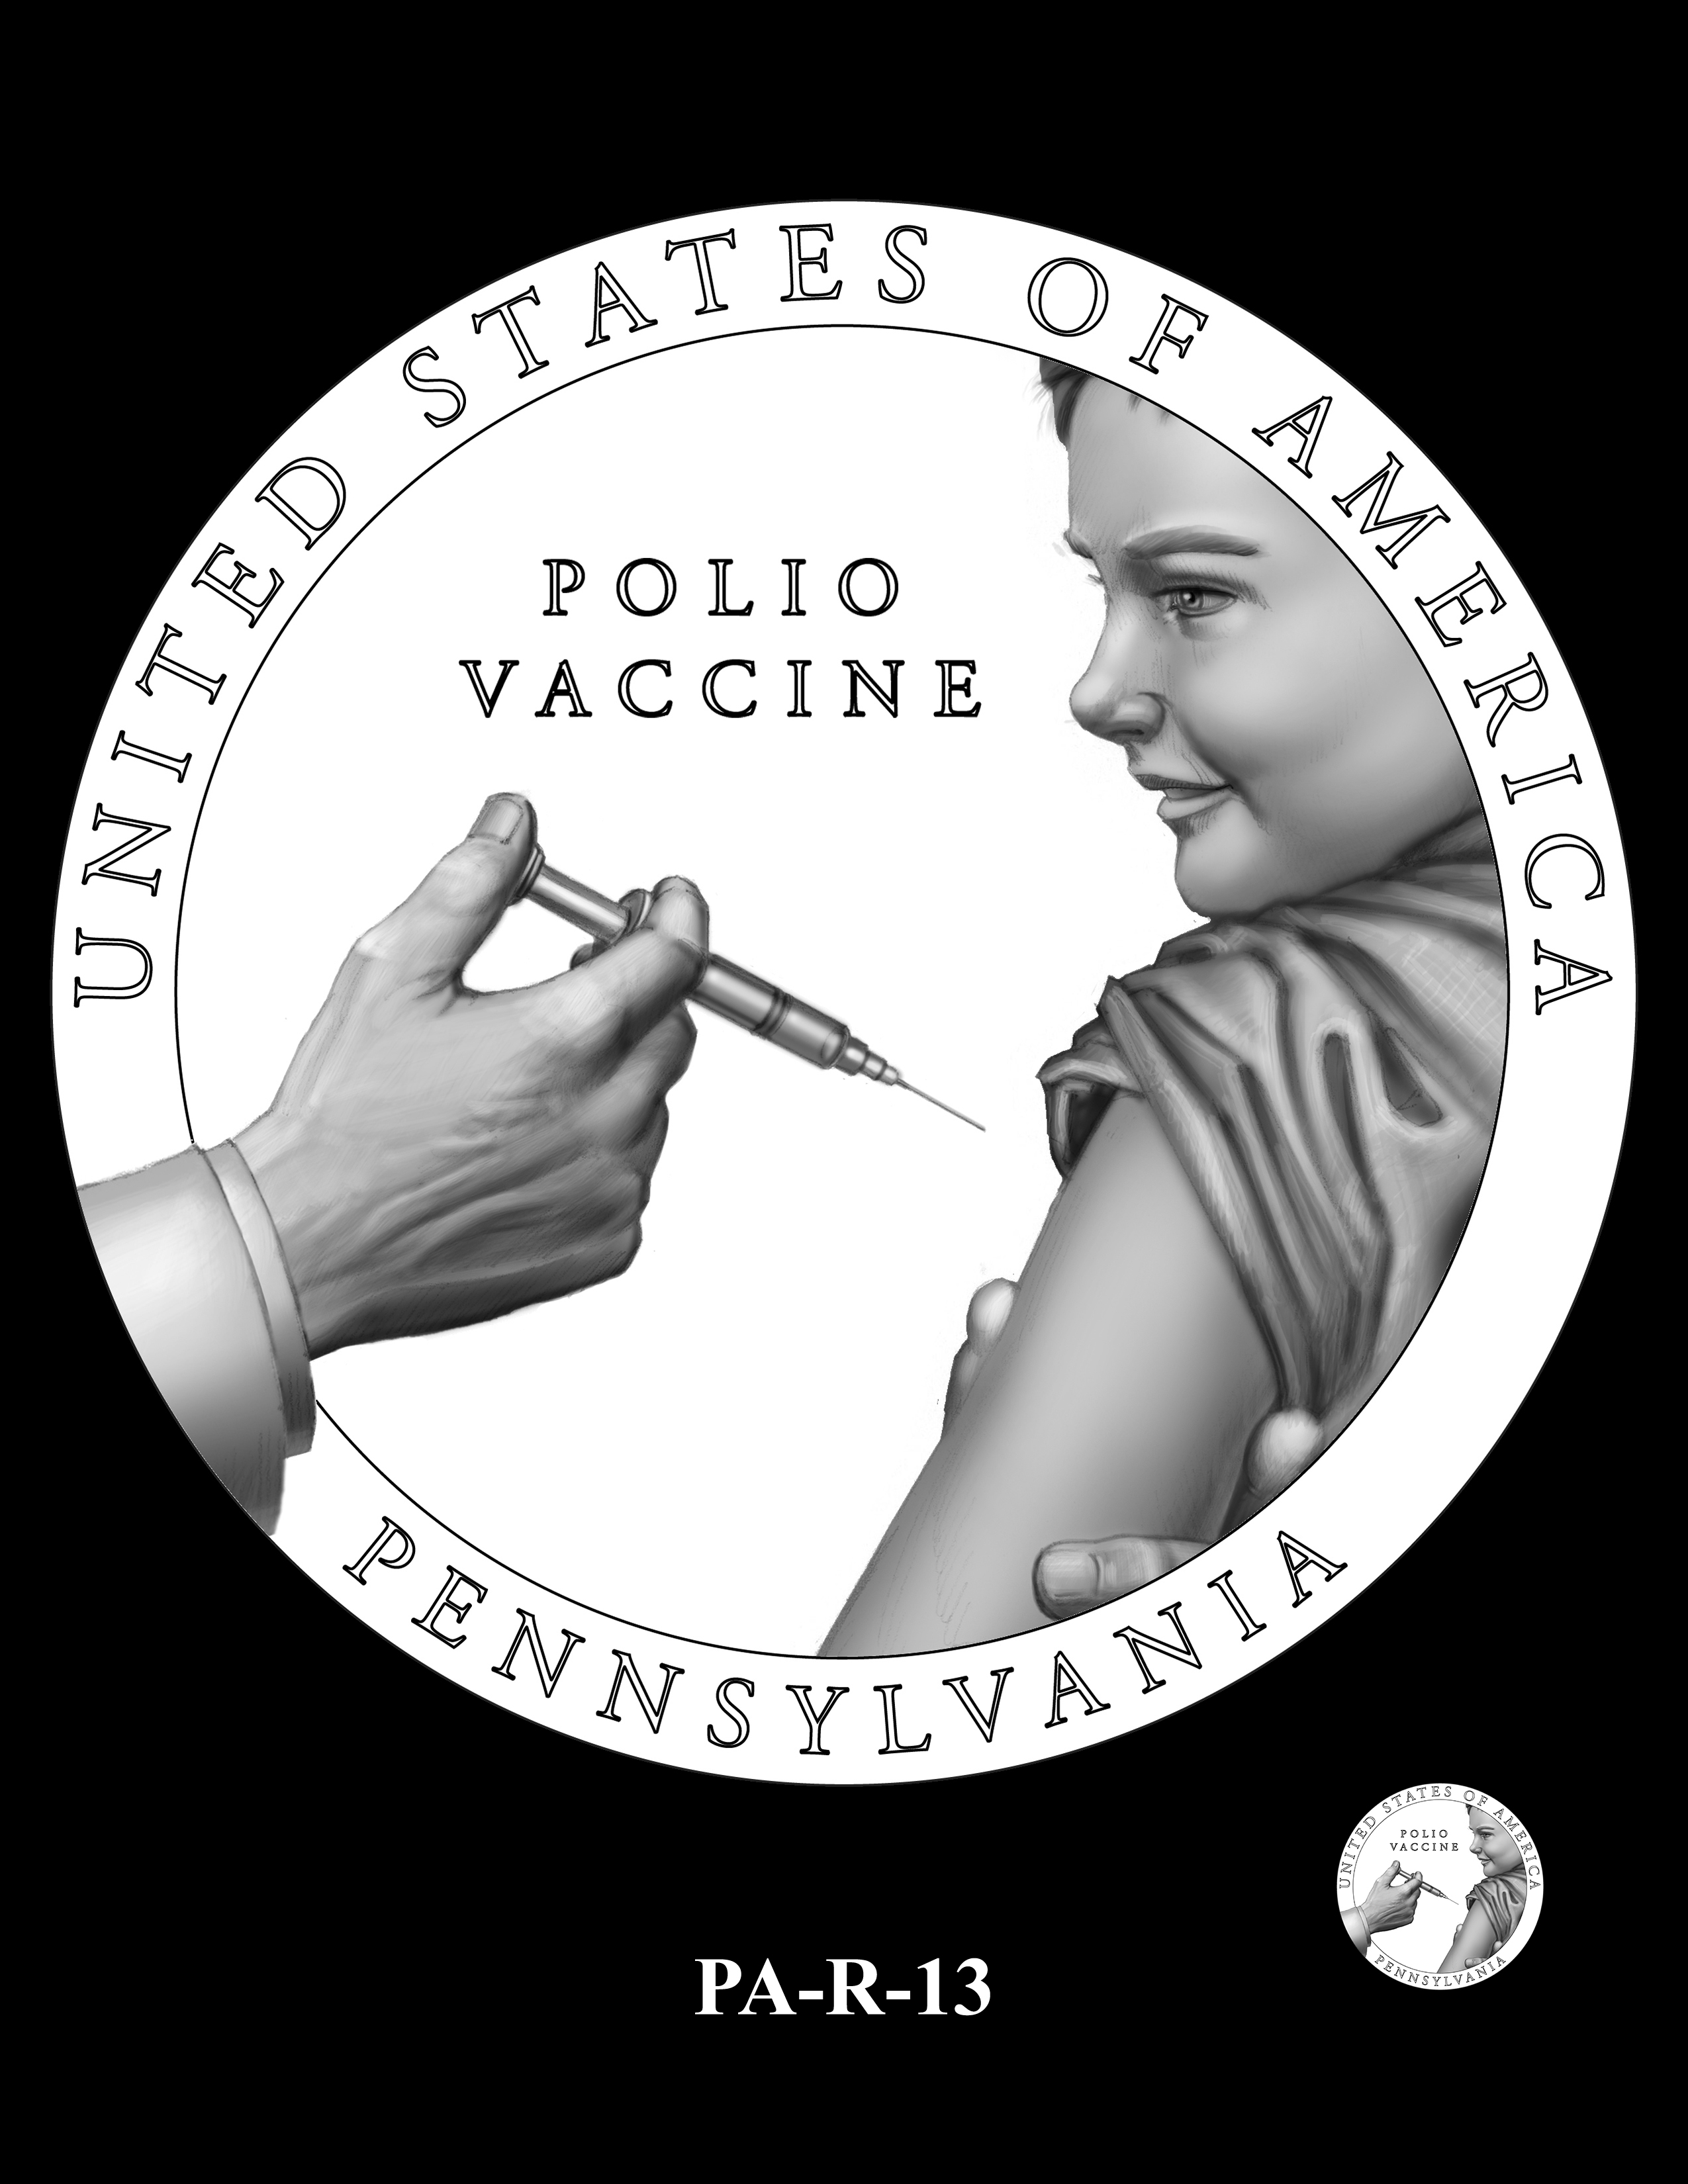 PA-R-13 -- 2019 American Innovation $1 Coin Program